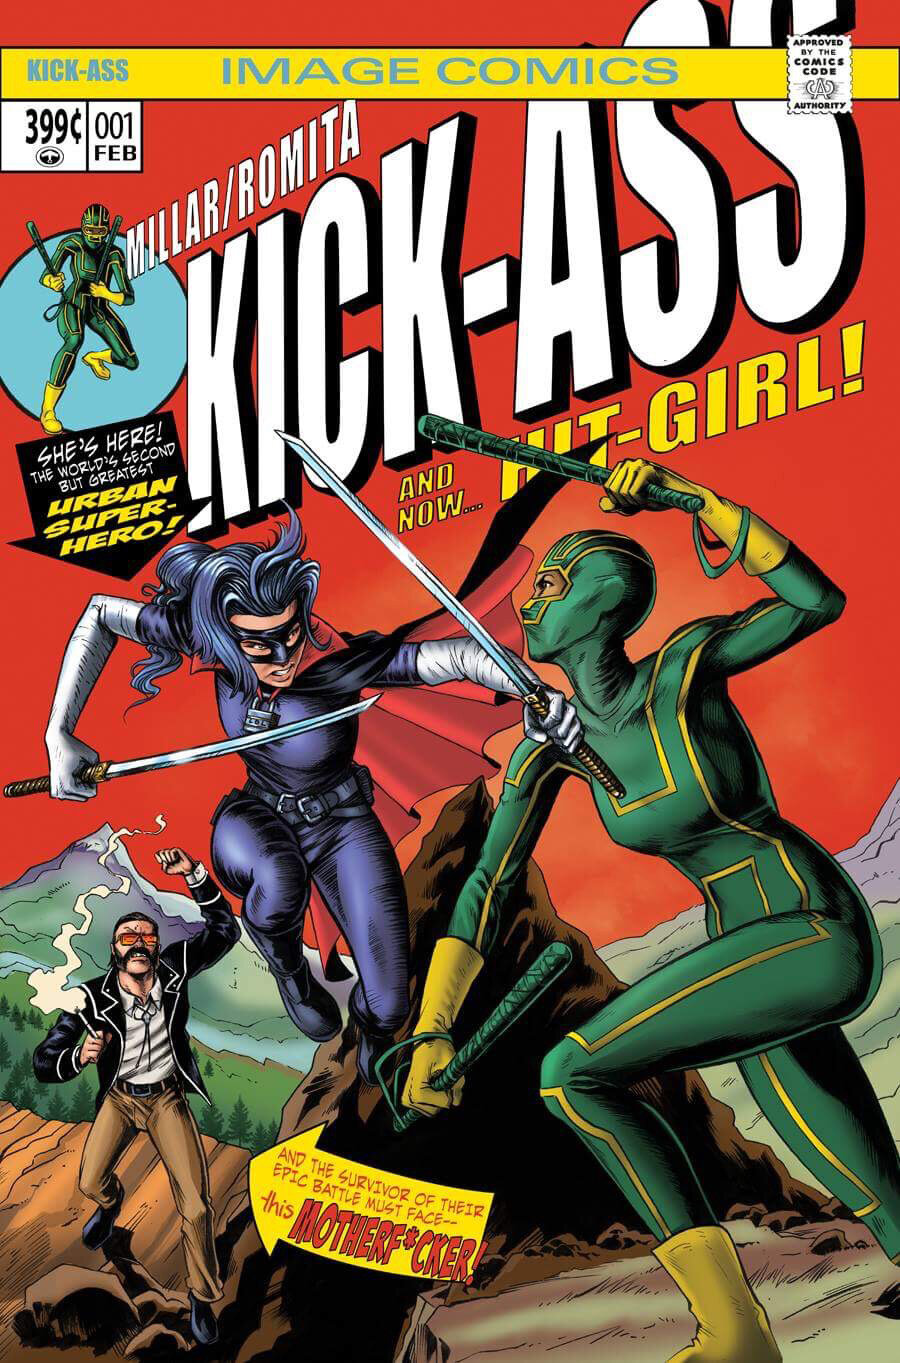 Kick-Ass #1 variant, Image Comics